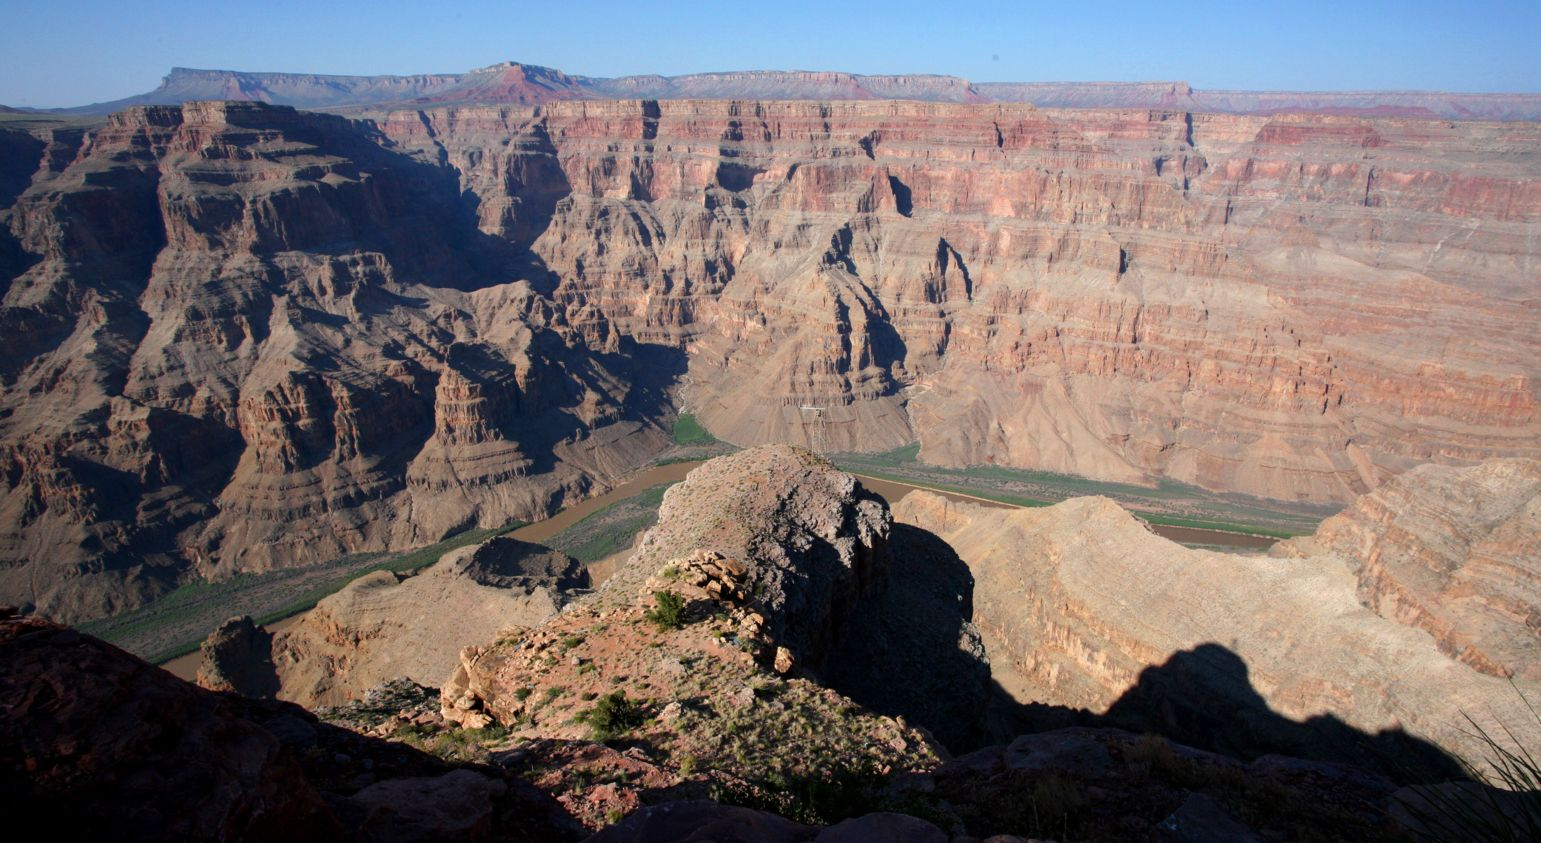 The Grand Canyon West and Colorado River seen from the canyon's edge.